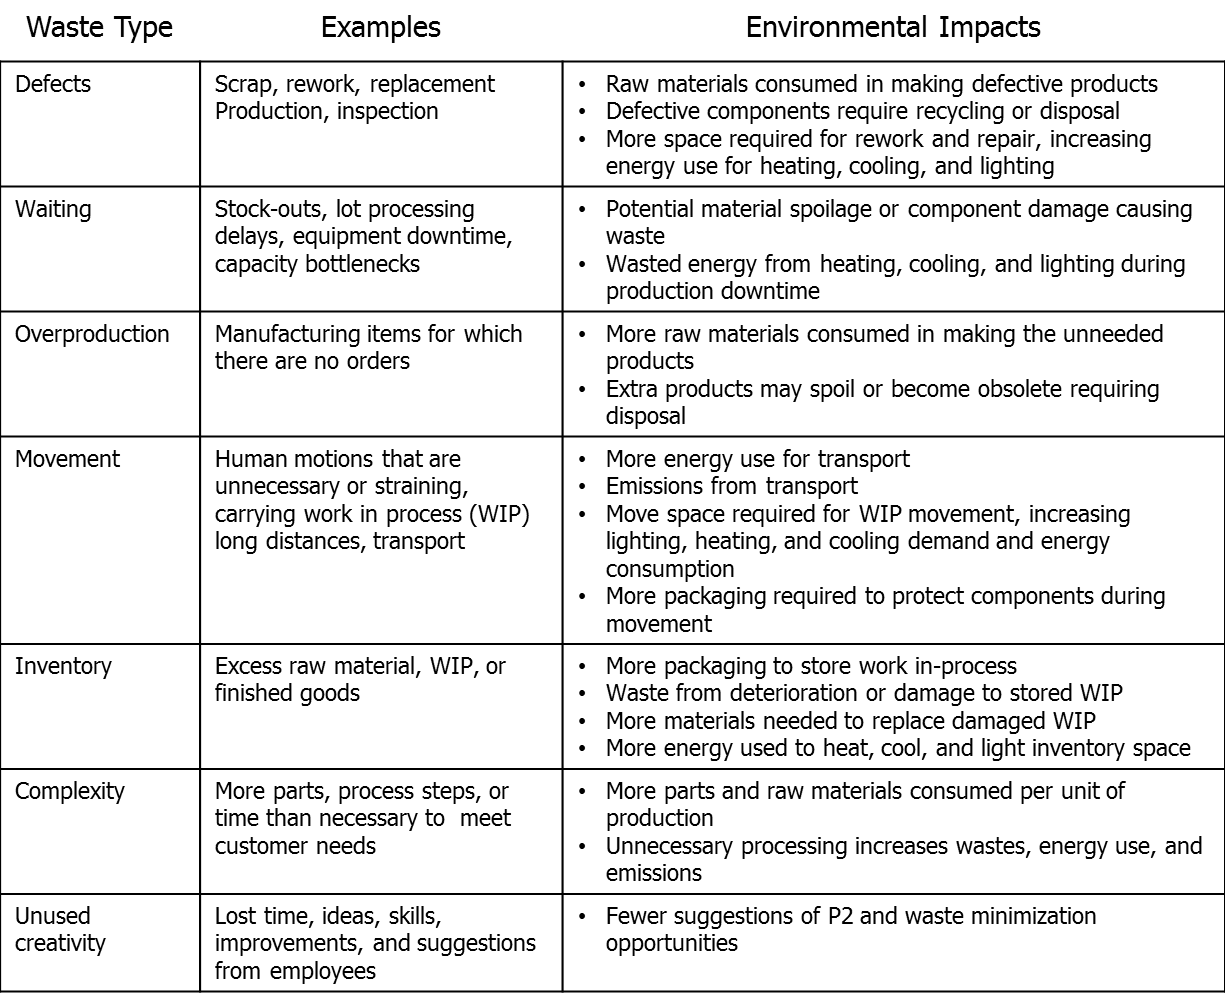 Source: Lean Manufacturing and the Environment, EPA100-R-03-005, United States Environmental Protection Agency, October 2003.